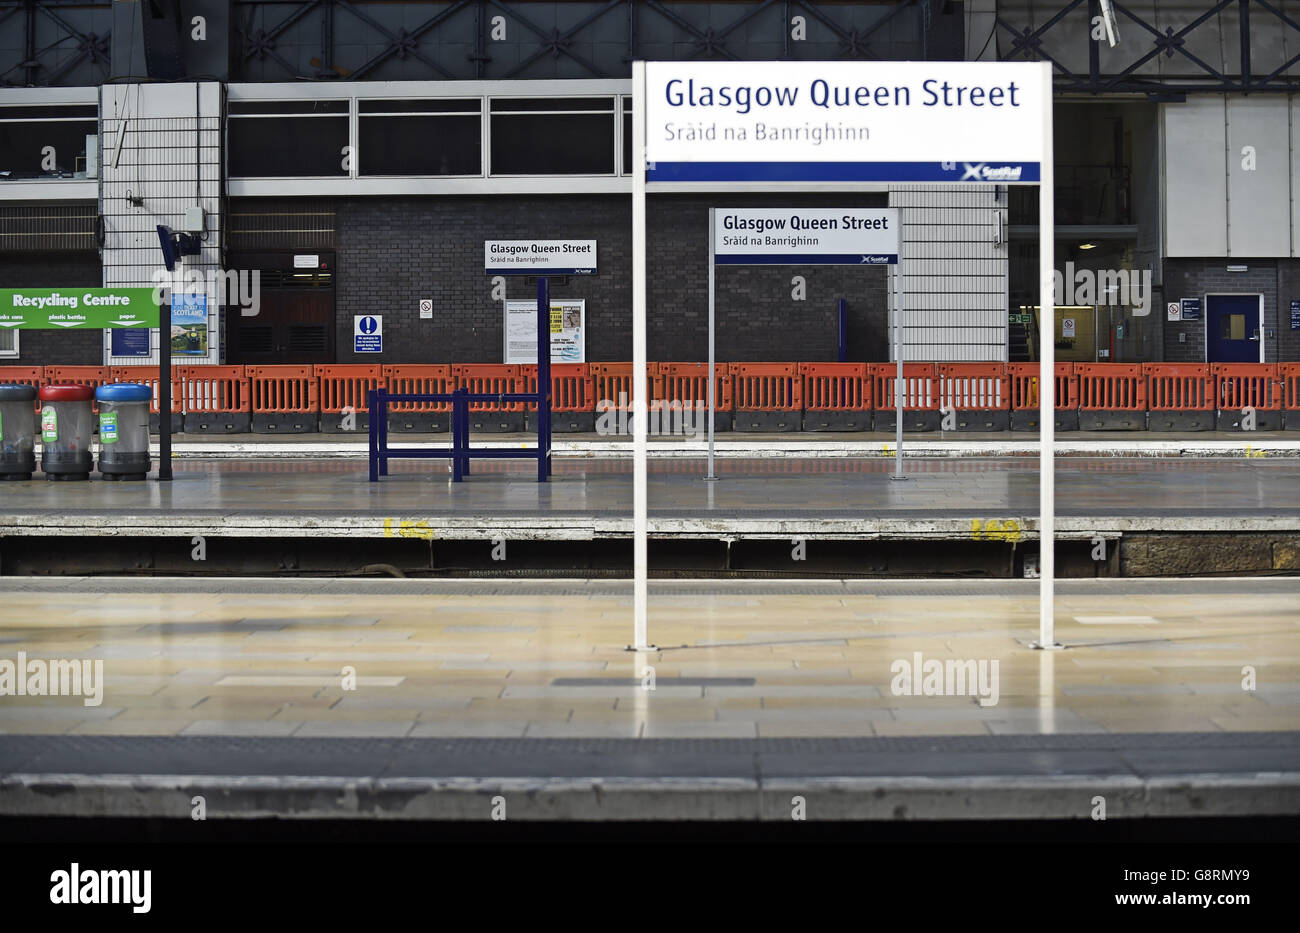 Queen Street Station renovation - Stock Image